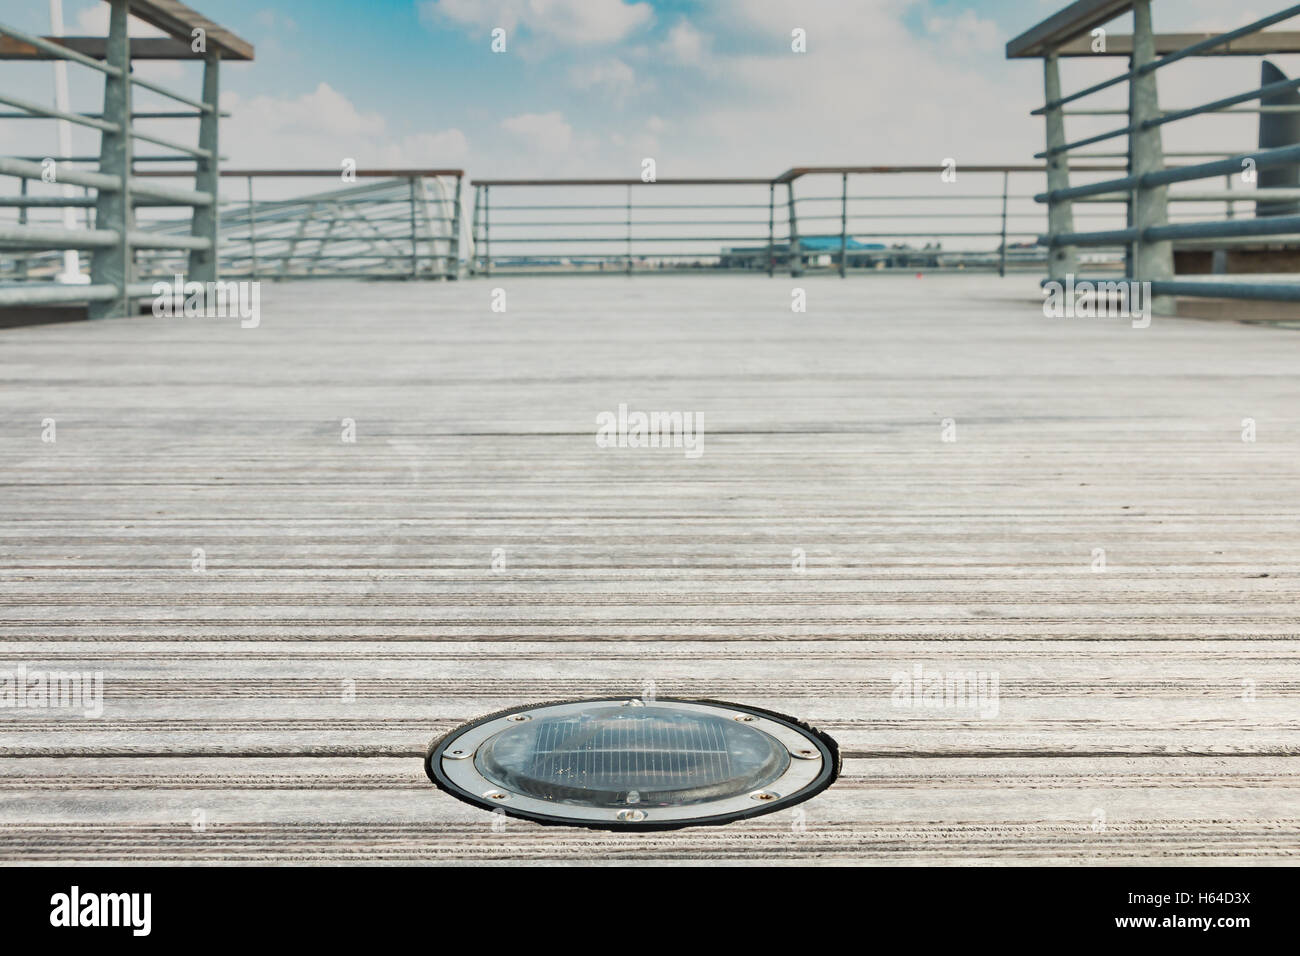 Solar Round Deck light LED on a wooden bridge with blue sky - Stock Image